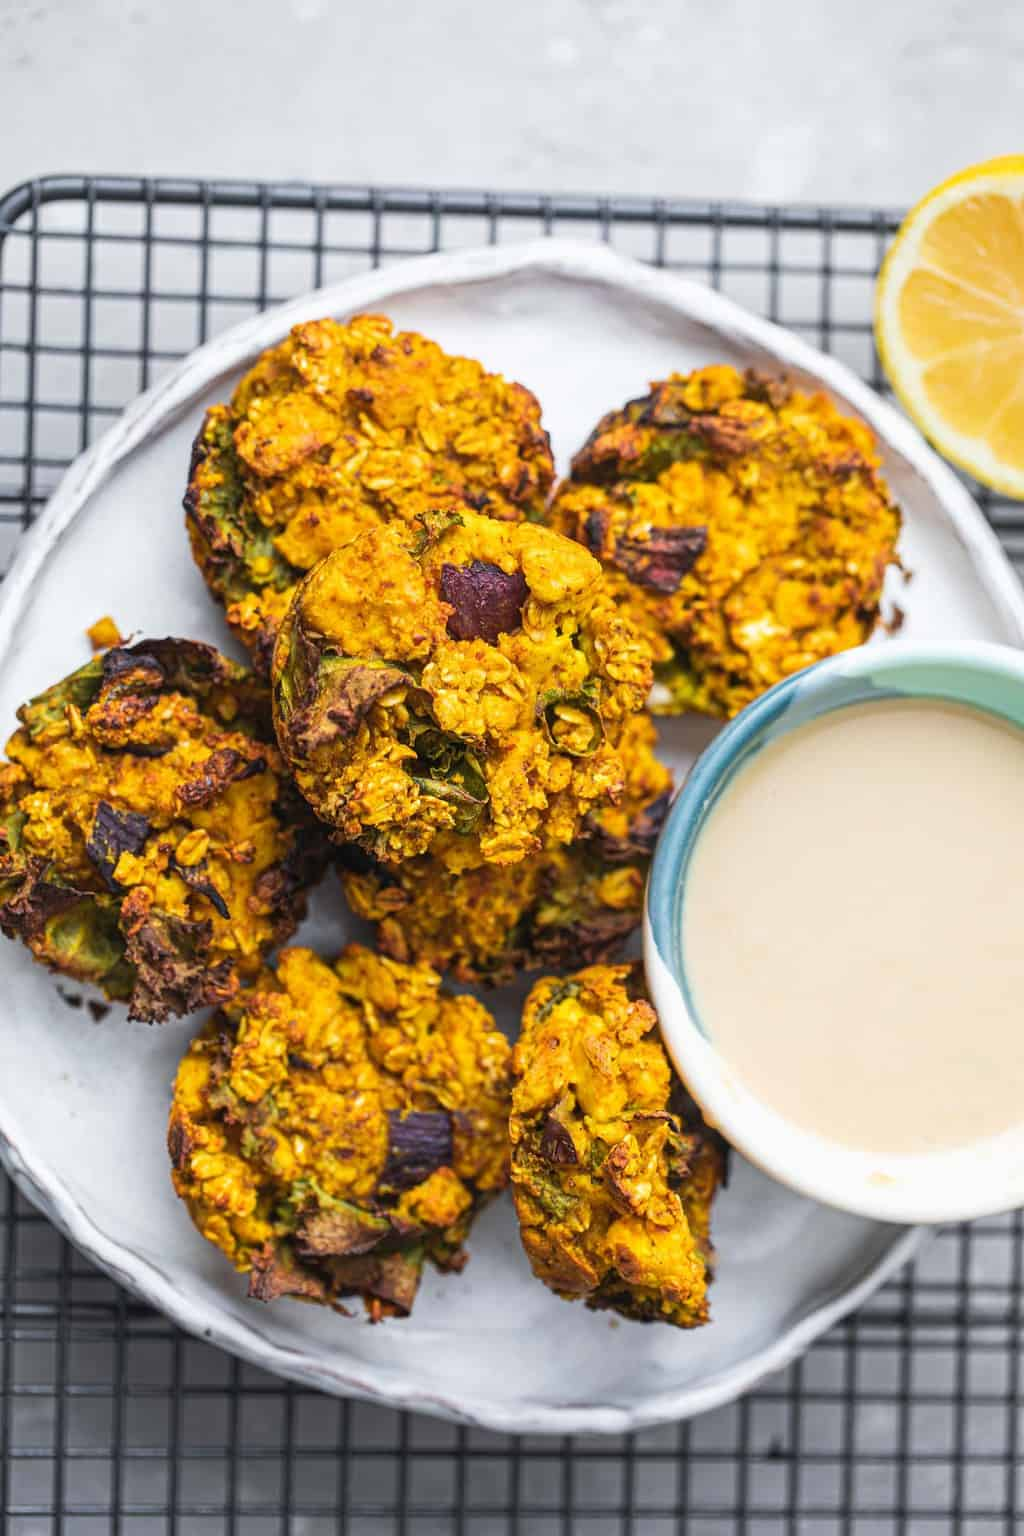 Plate of vegan 'egg' muffins next to tahini sauce on a white plate